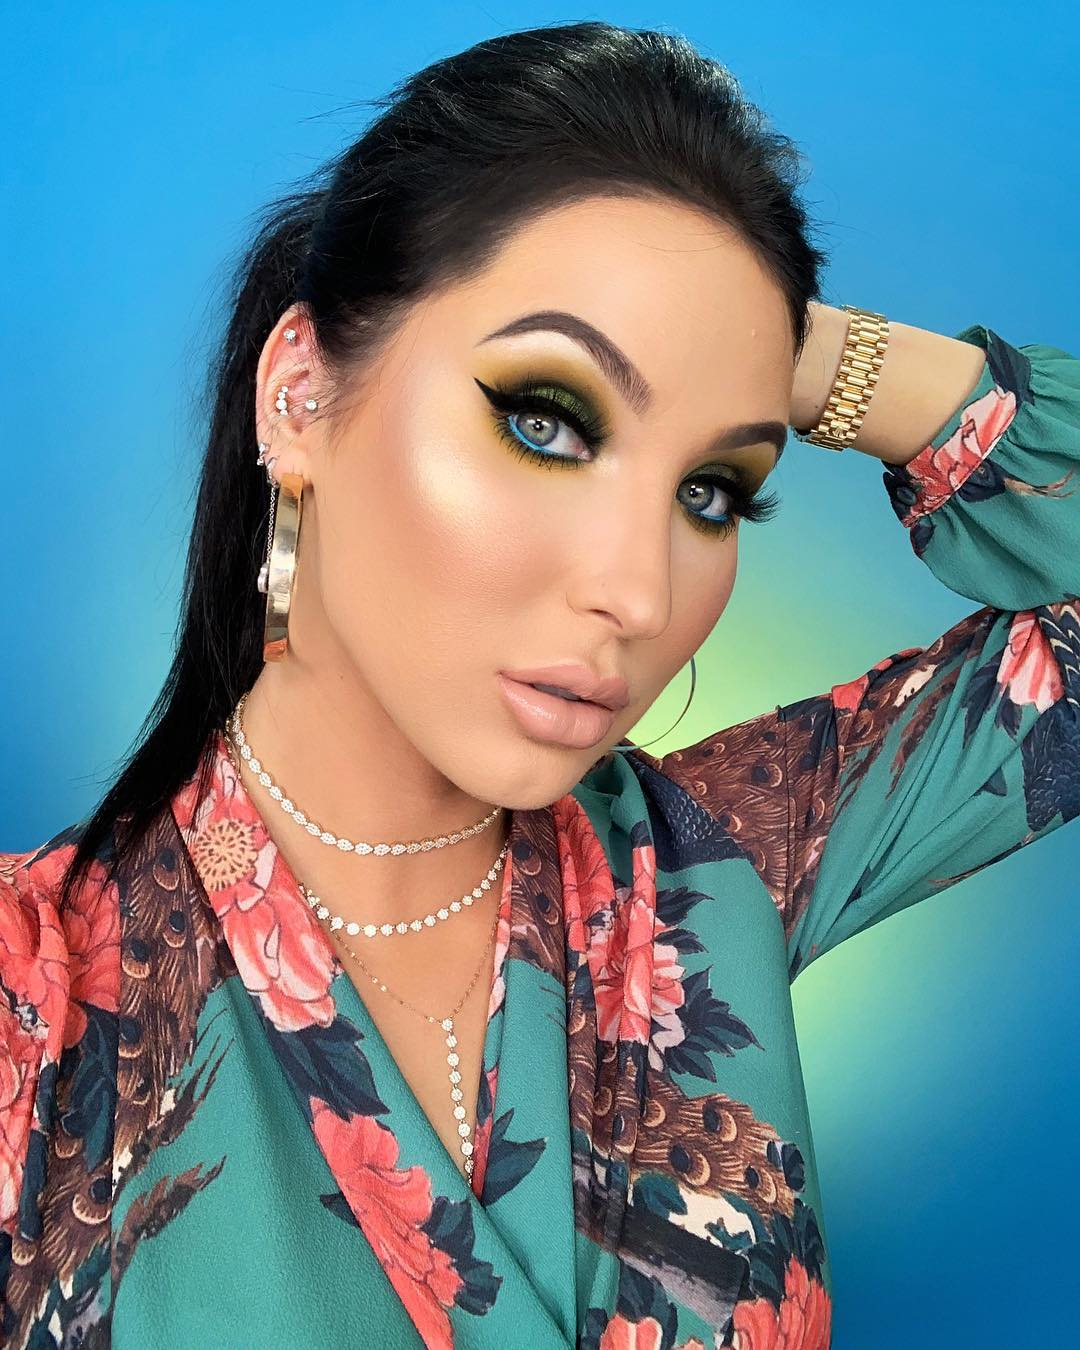 Jaclyn Hill With Cat Eye Makeup And Nude Lips Wearing Peacock Floral Blouse 2019